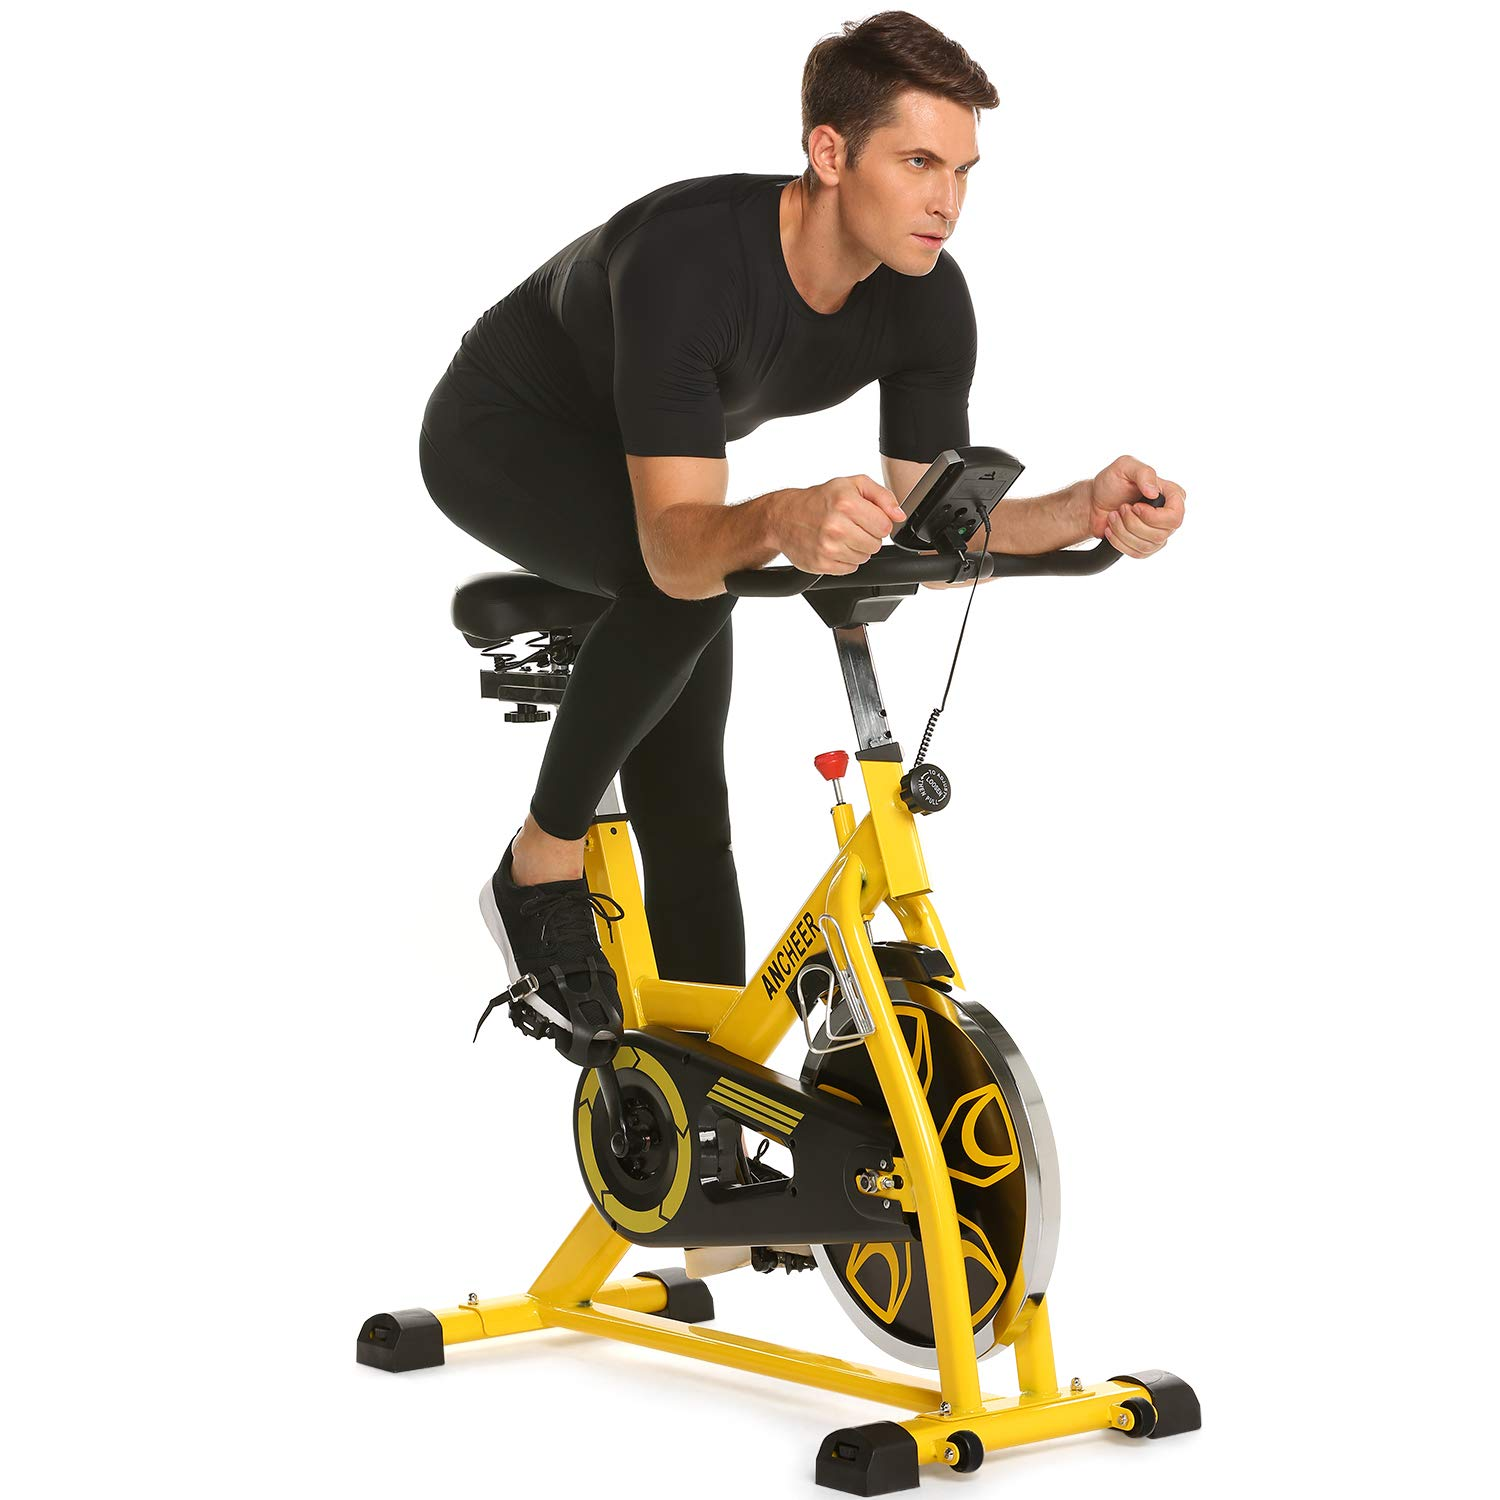 ANCHEER Indoor Cycling Bike, 49 lbs Flywheel Indoor Cycling Exercise Bike with Quiet Smooth Belt Drive System, Adjustable Seat & Handlebars & Base (Yellow)